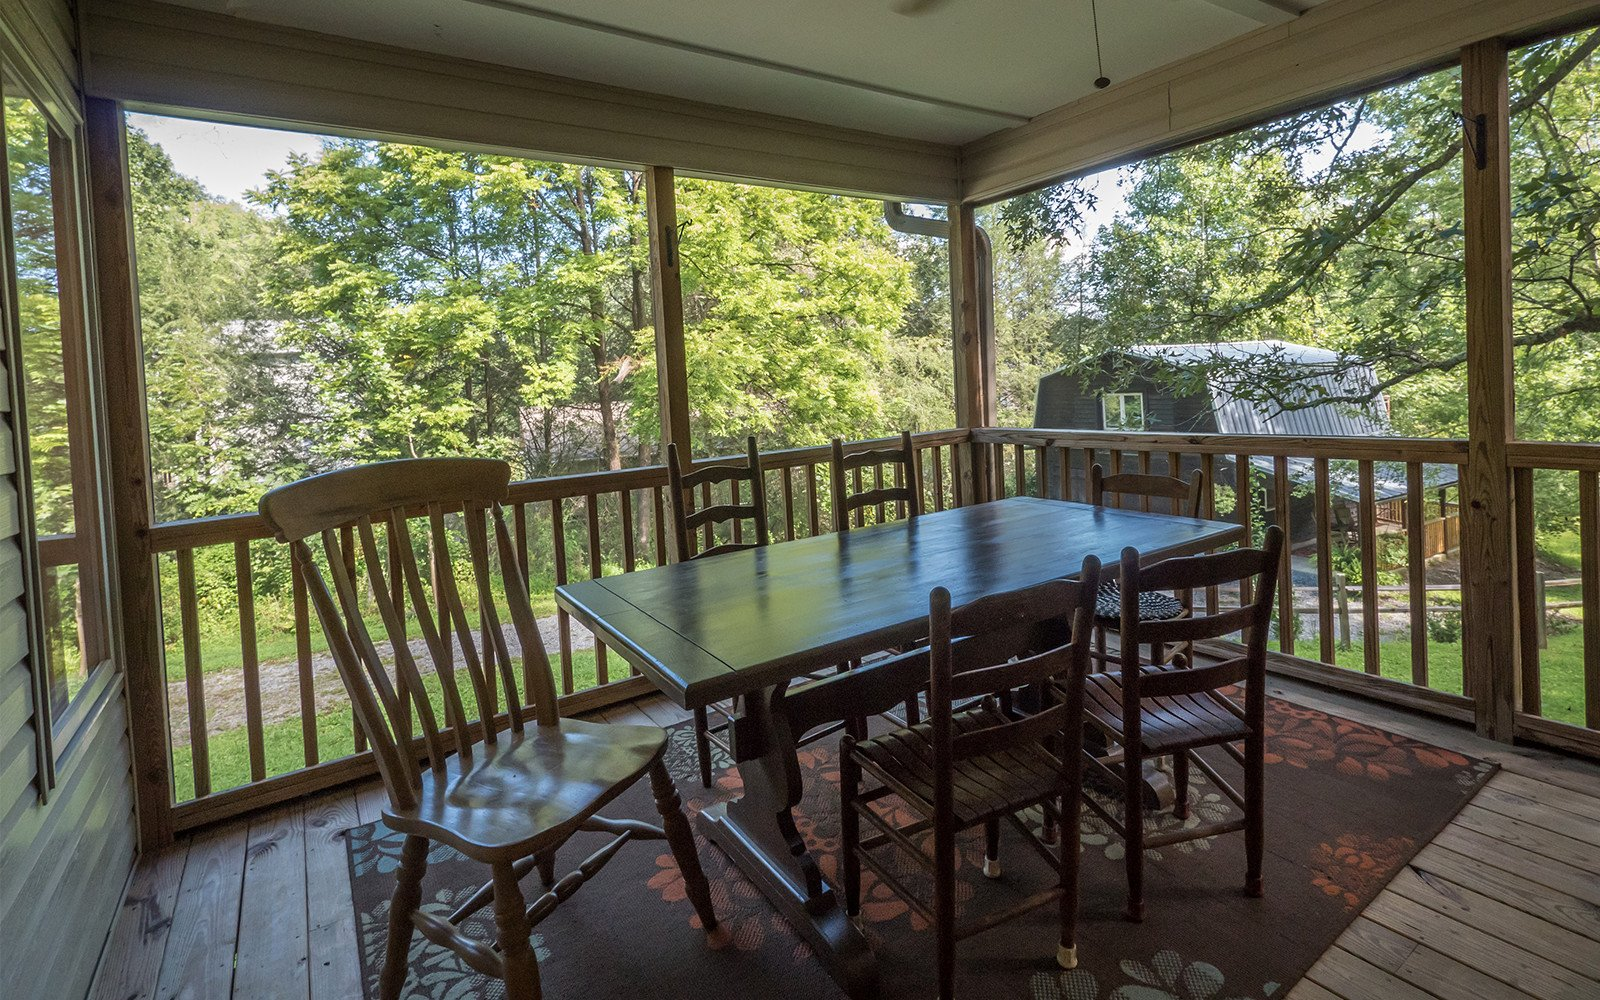 Dining-on-screened-porch-Hilt-St-house